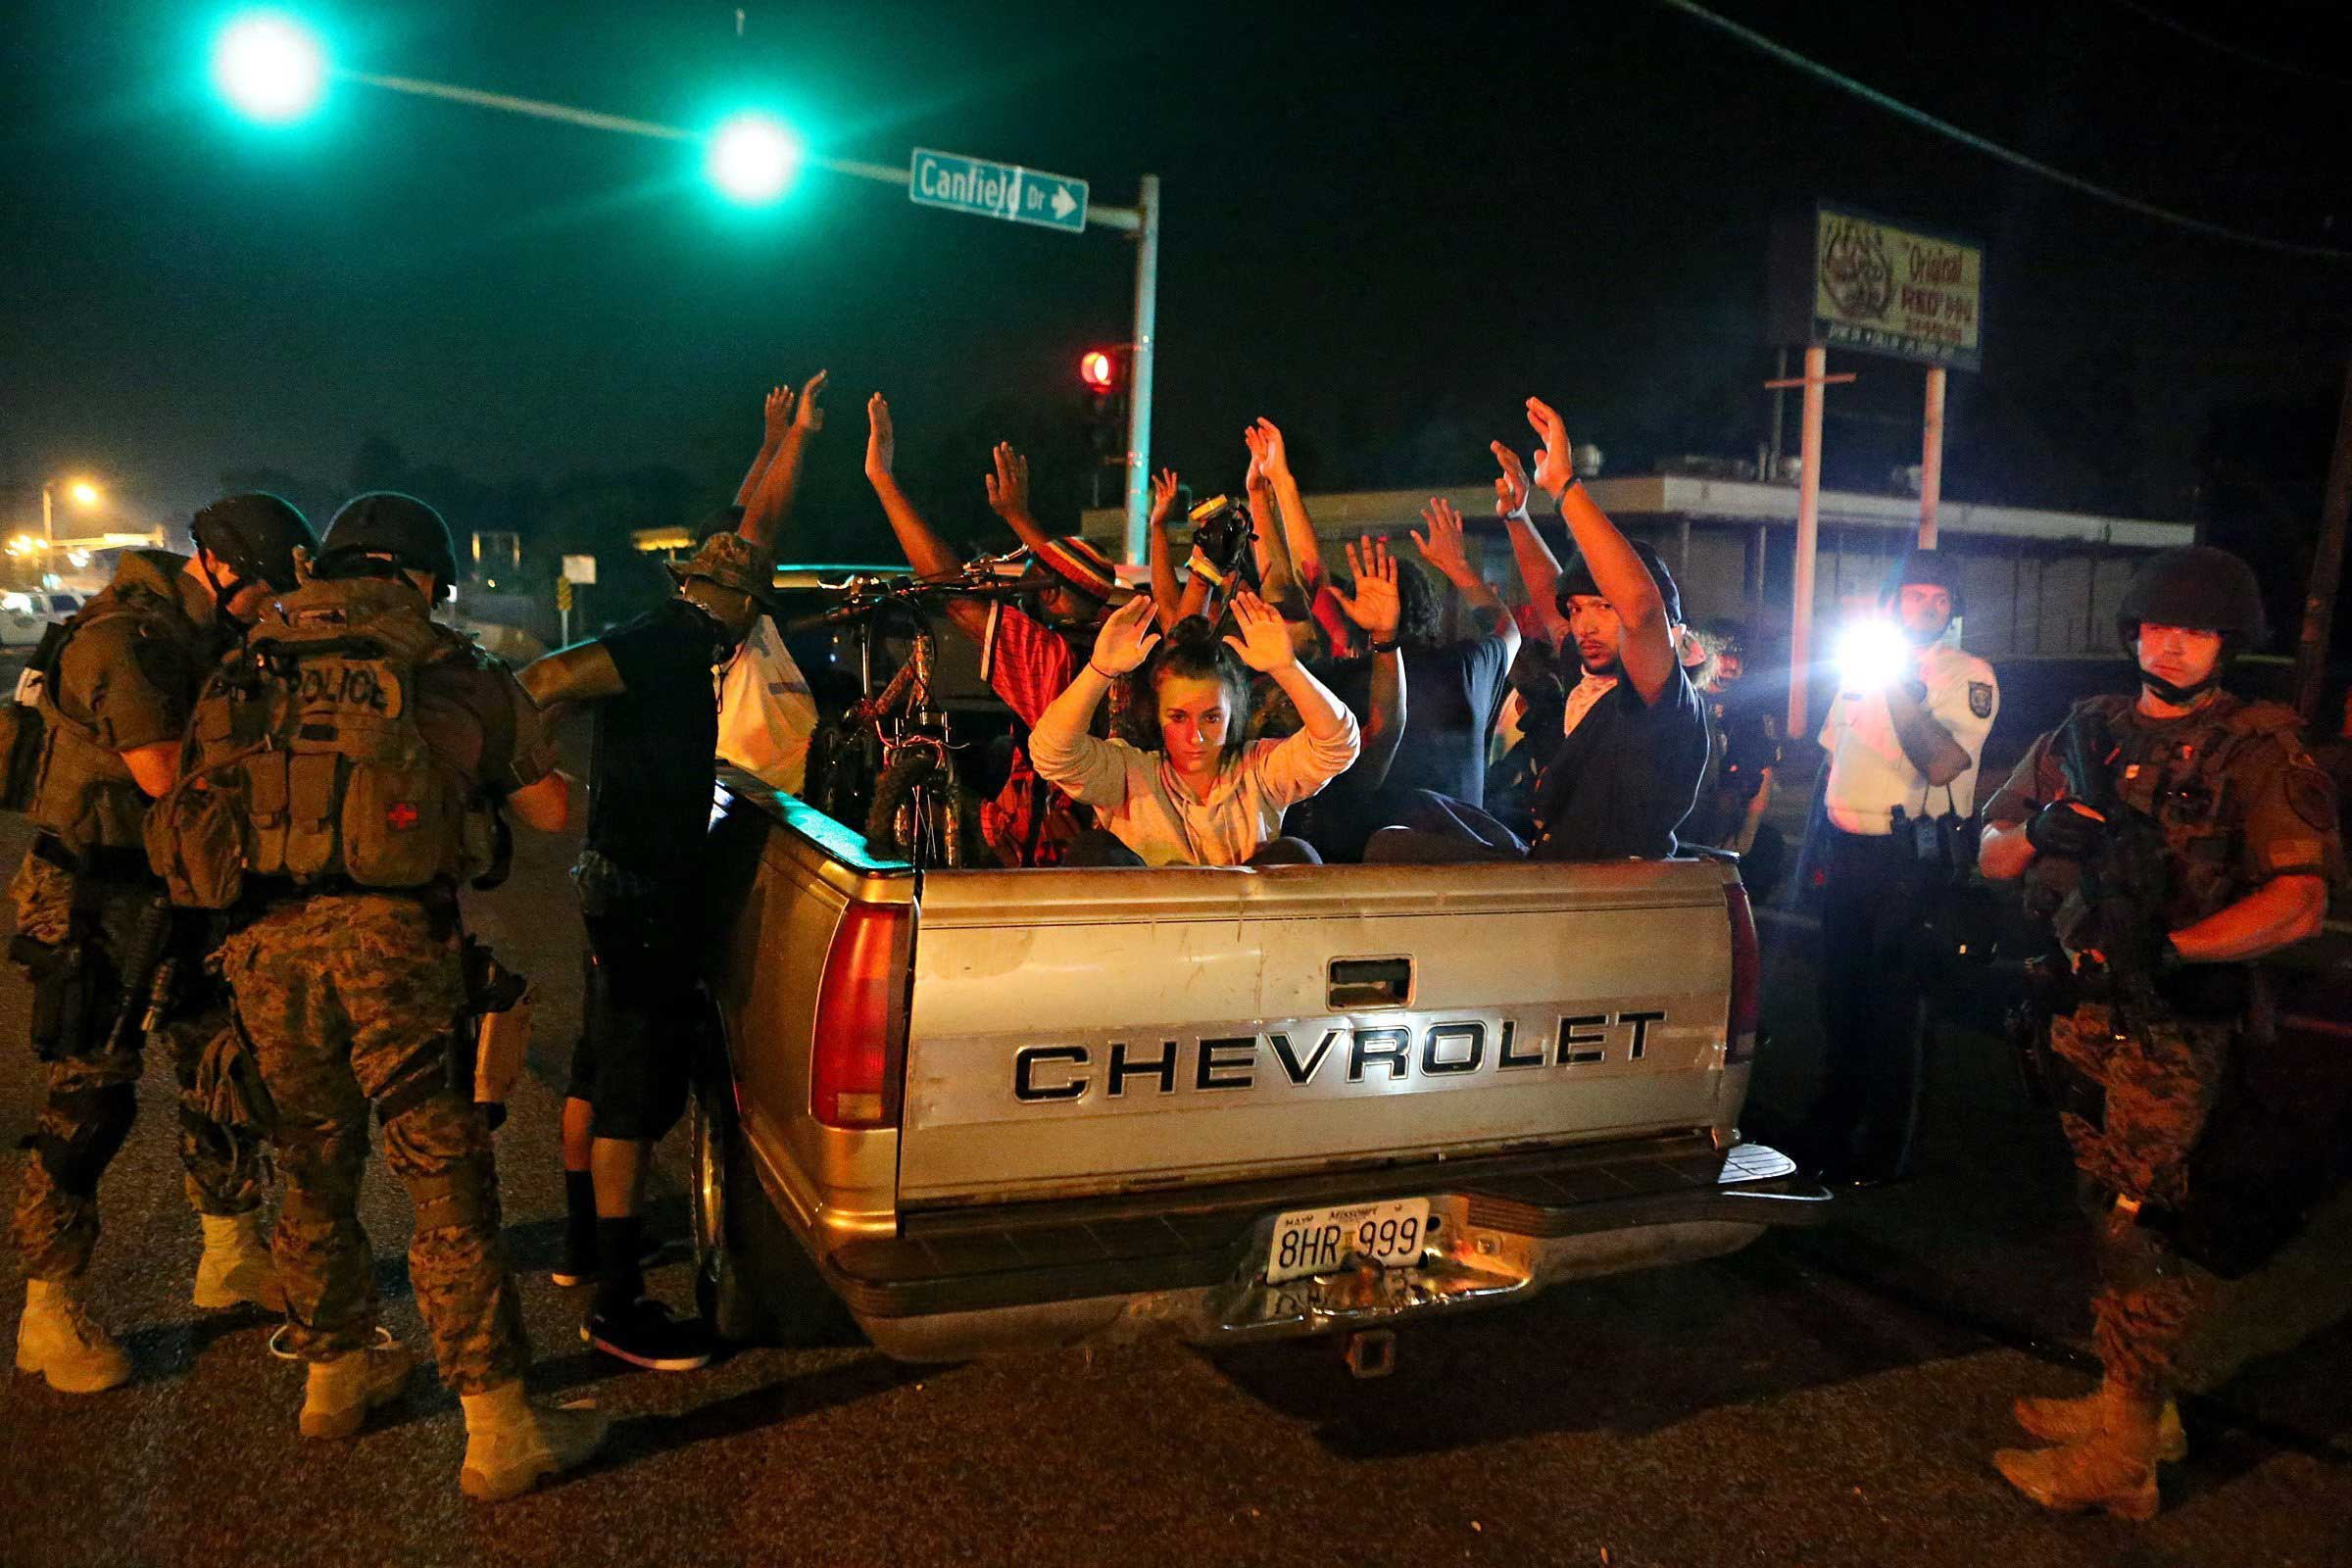 Aug. 19, 2014. Members of the St. Louis County Police tactical team take a truck load of 12 people into custody after they stopped it driving along W. Florissant Road near Canfield Drive. The police found two loaded guns on the people in the truck and removed an unused Molotov cocktail from the truck. Protests and clashes erupted between police and protesters in a Missouri city where racial tensions have boiled over since Ferguson police officer Darren Wilson fatally shot unarmed Black teen Michael Brown on Aug. 9.